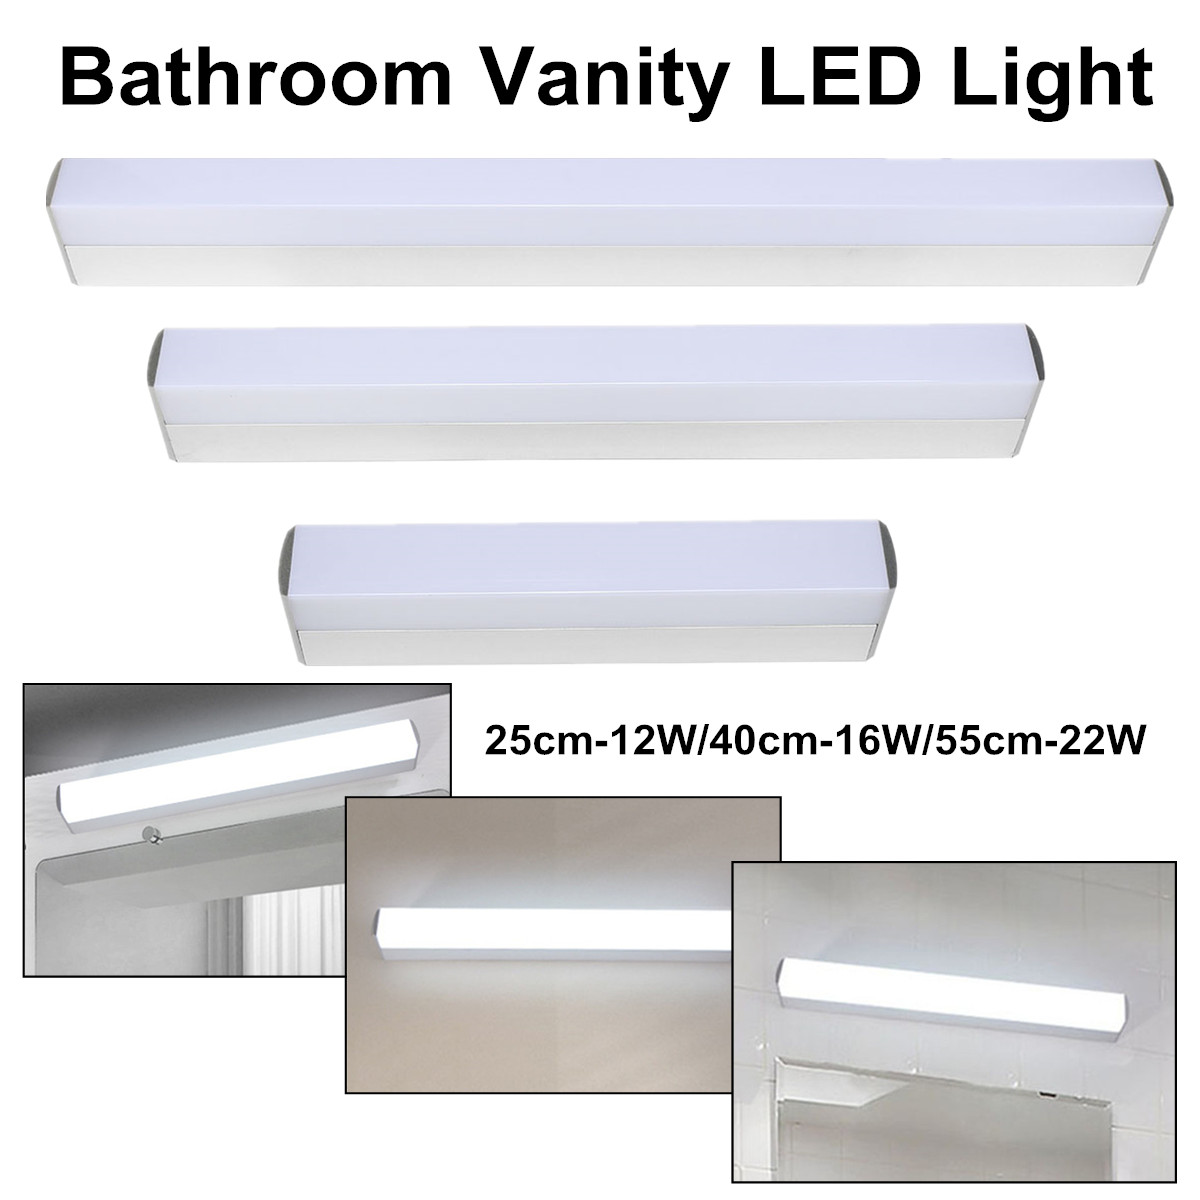 Lights & Lighting 85-265v 25cm12w 40cm16w 55cm22w Modern Bathroom Vanity Led Light White Acrylic Front Mirror Toilet Wall Lamp Fixture Waterproof Agreeable Sweetness Led Lamps